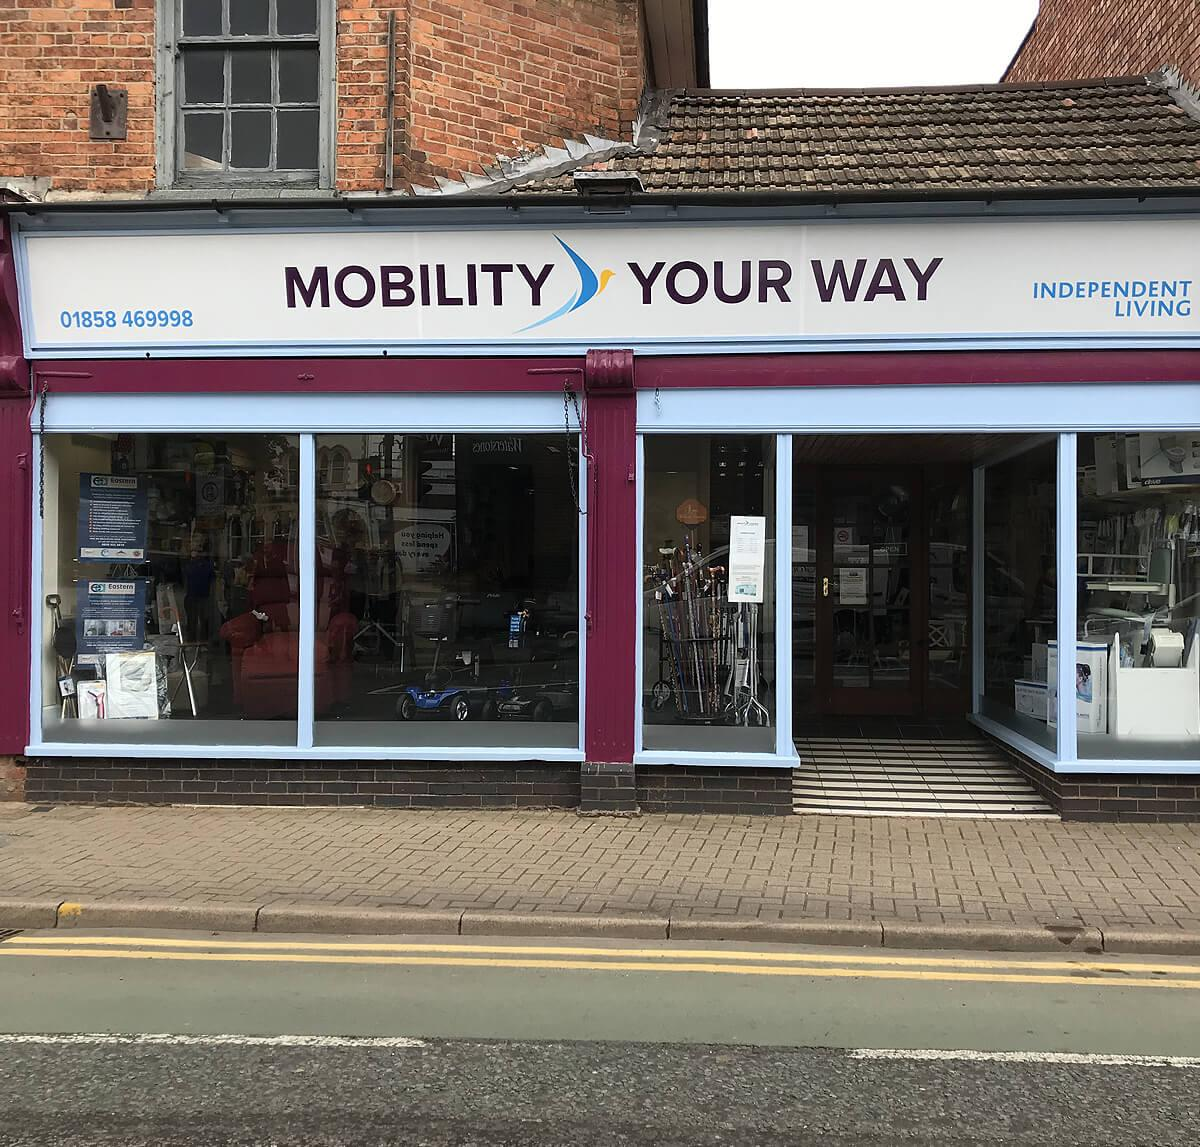 Market Harborough Mobility Your Way